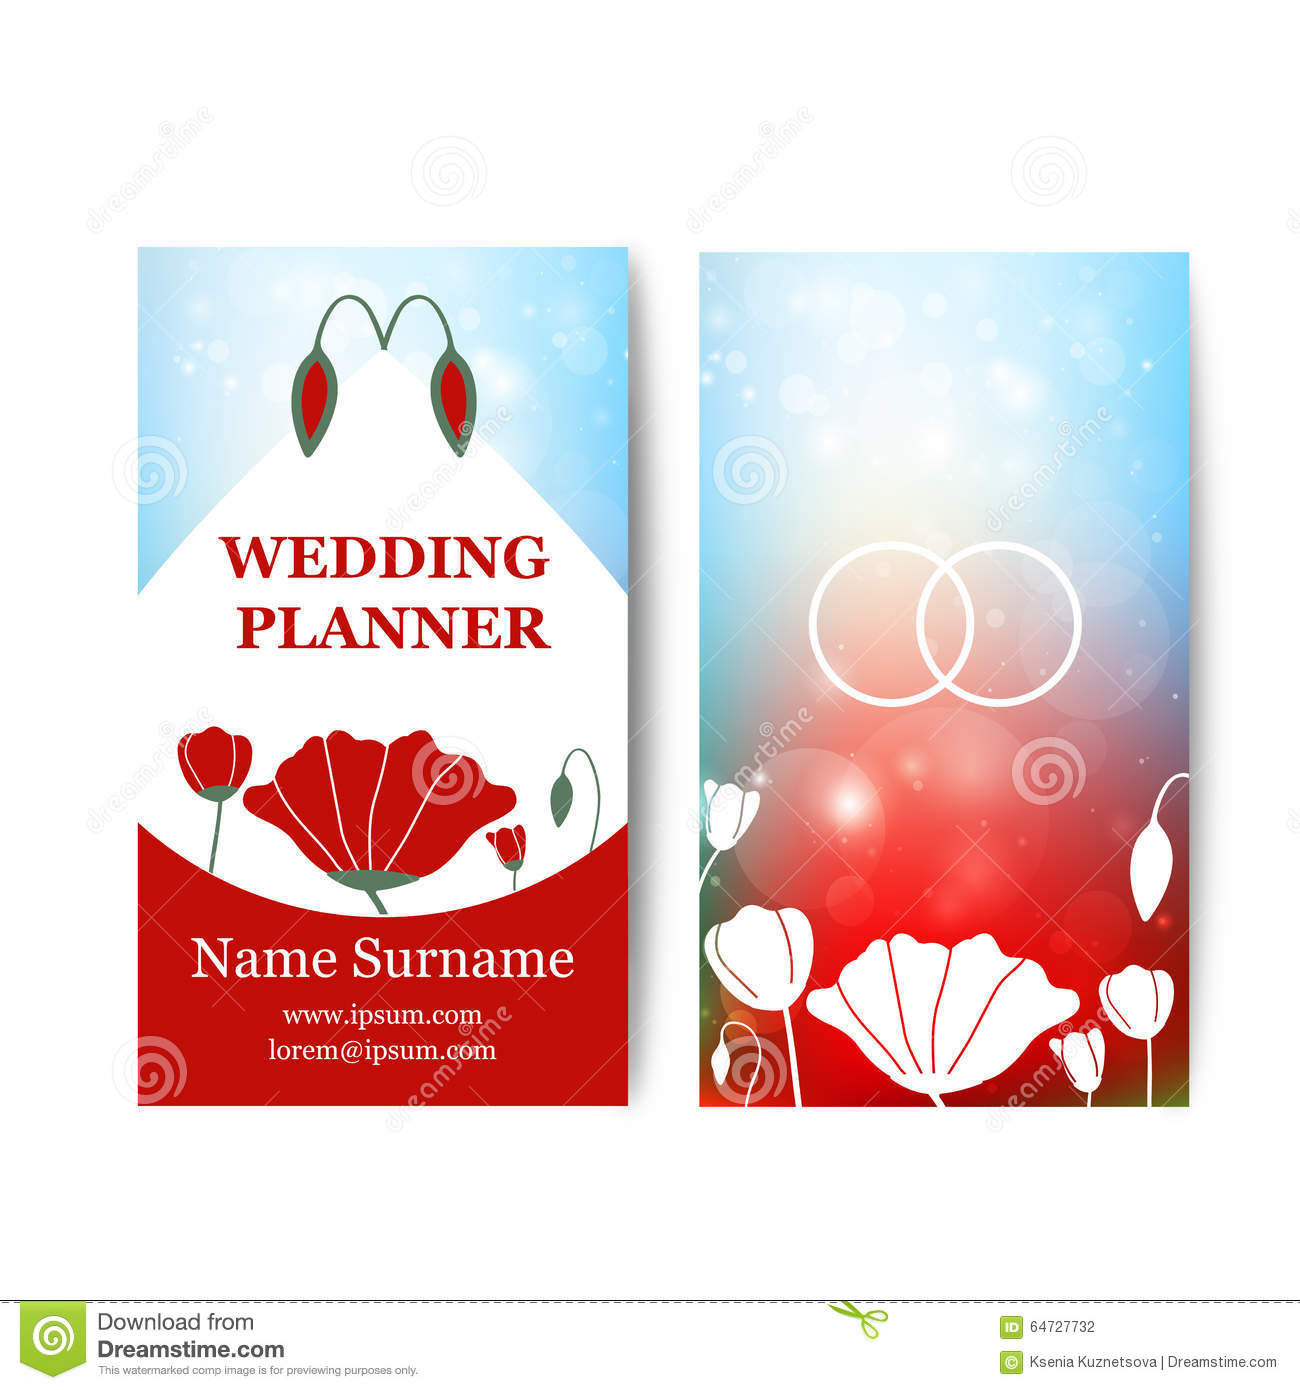 Wedding Planner Business Card Stock Vector - Image: 72196488